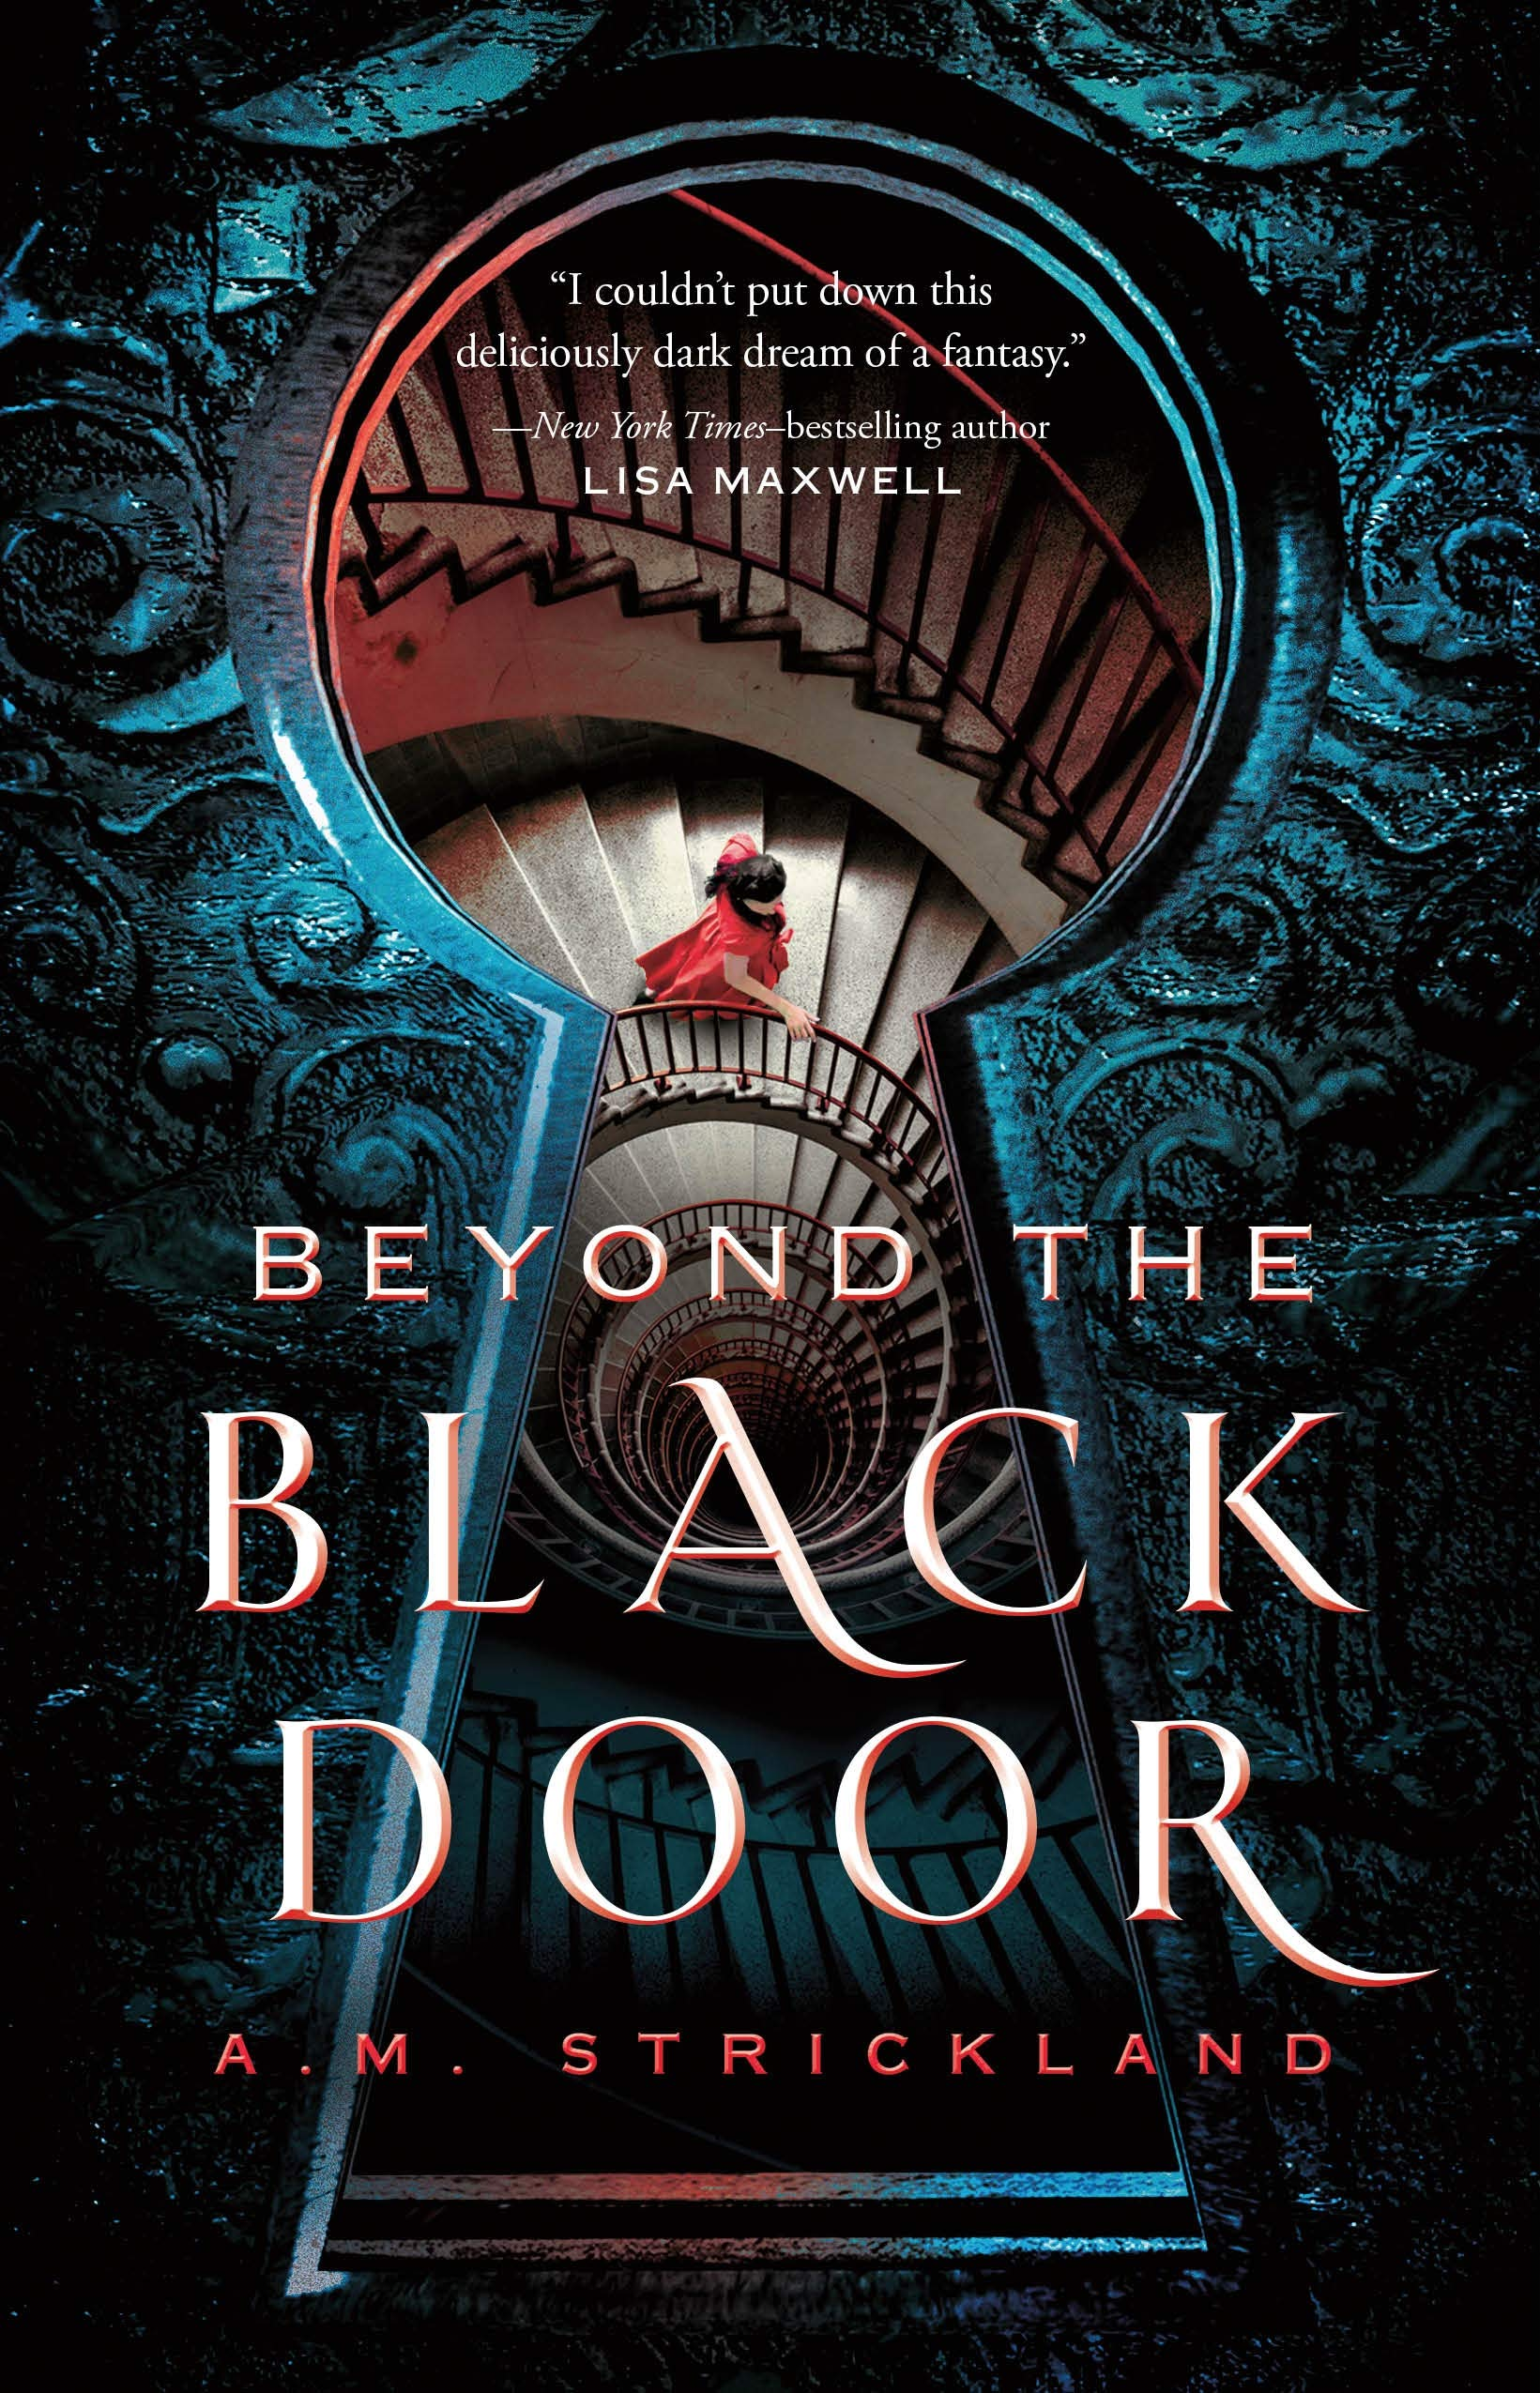 Amazon.com: Beyond the Black Door (9781250198747): Strickland, A.M.: Books